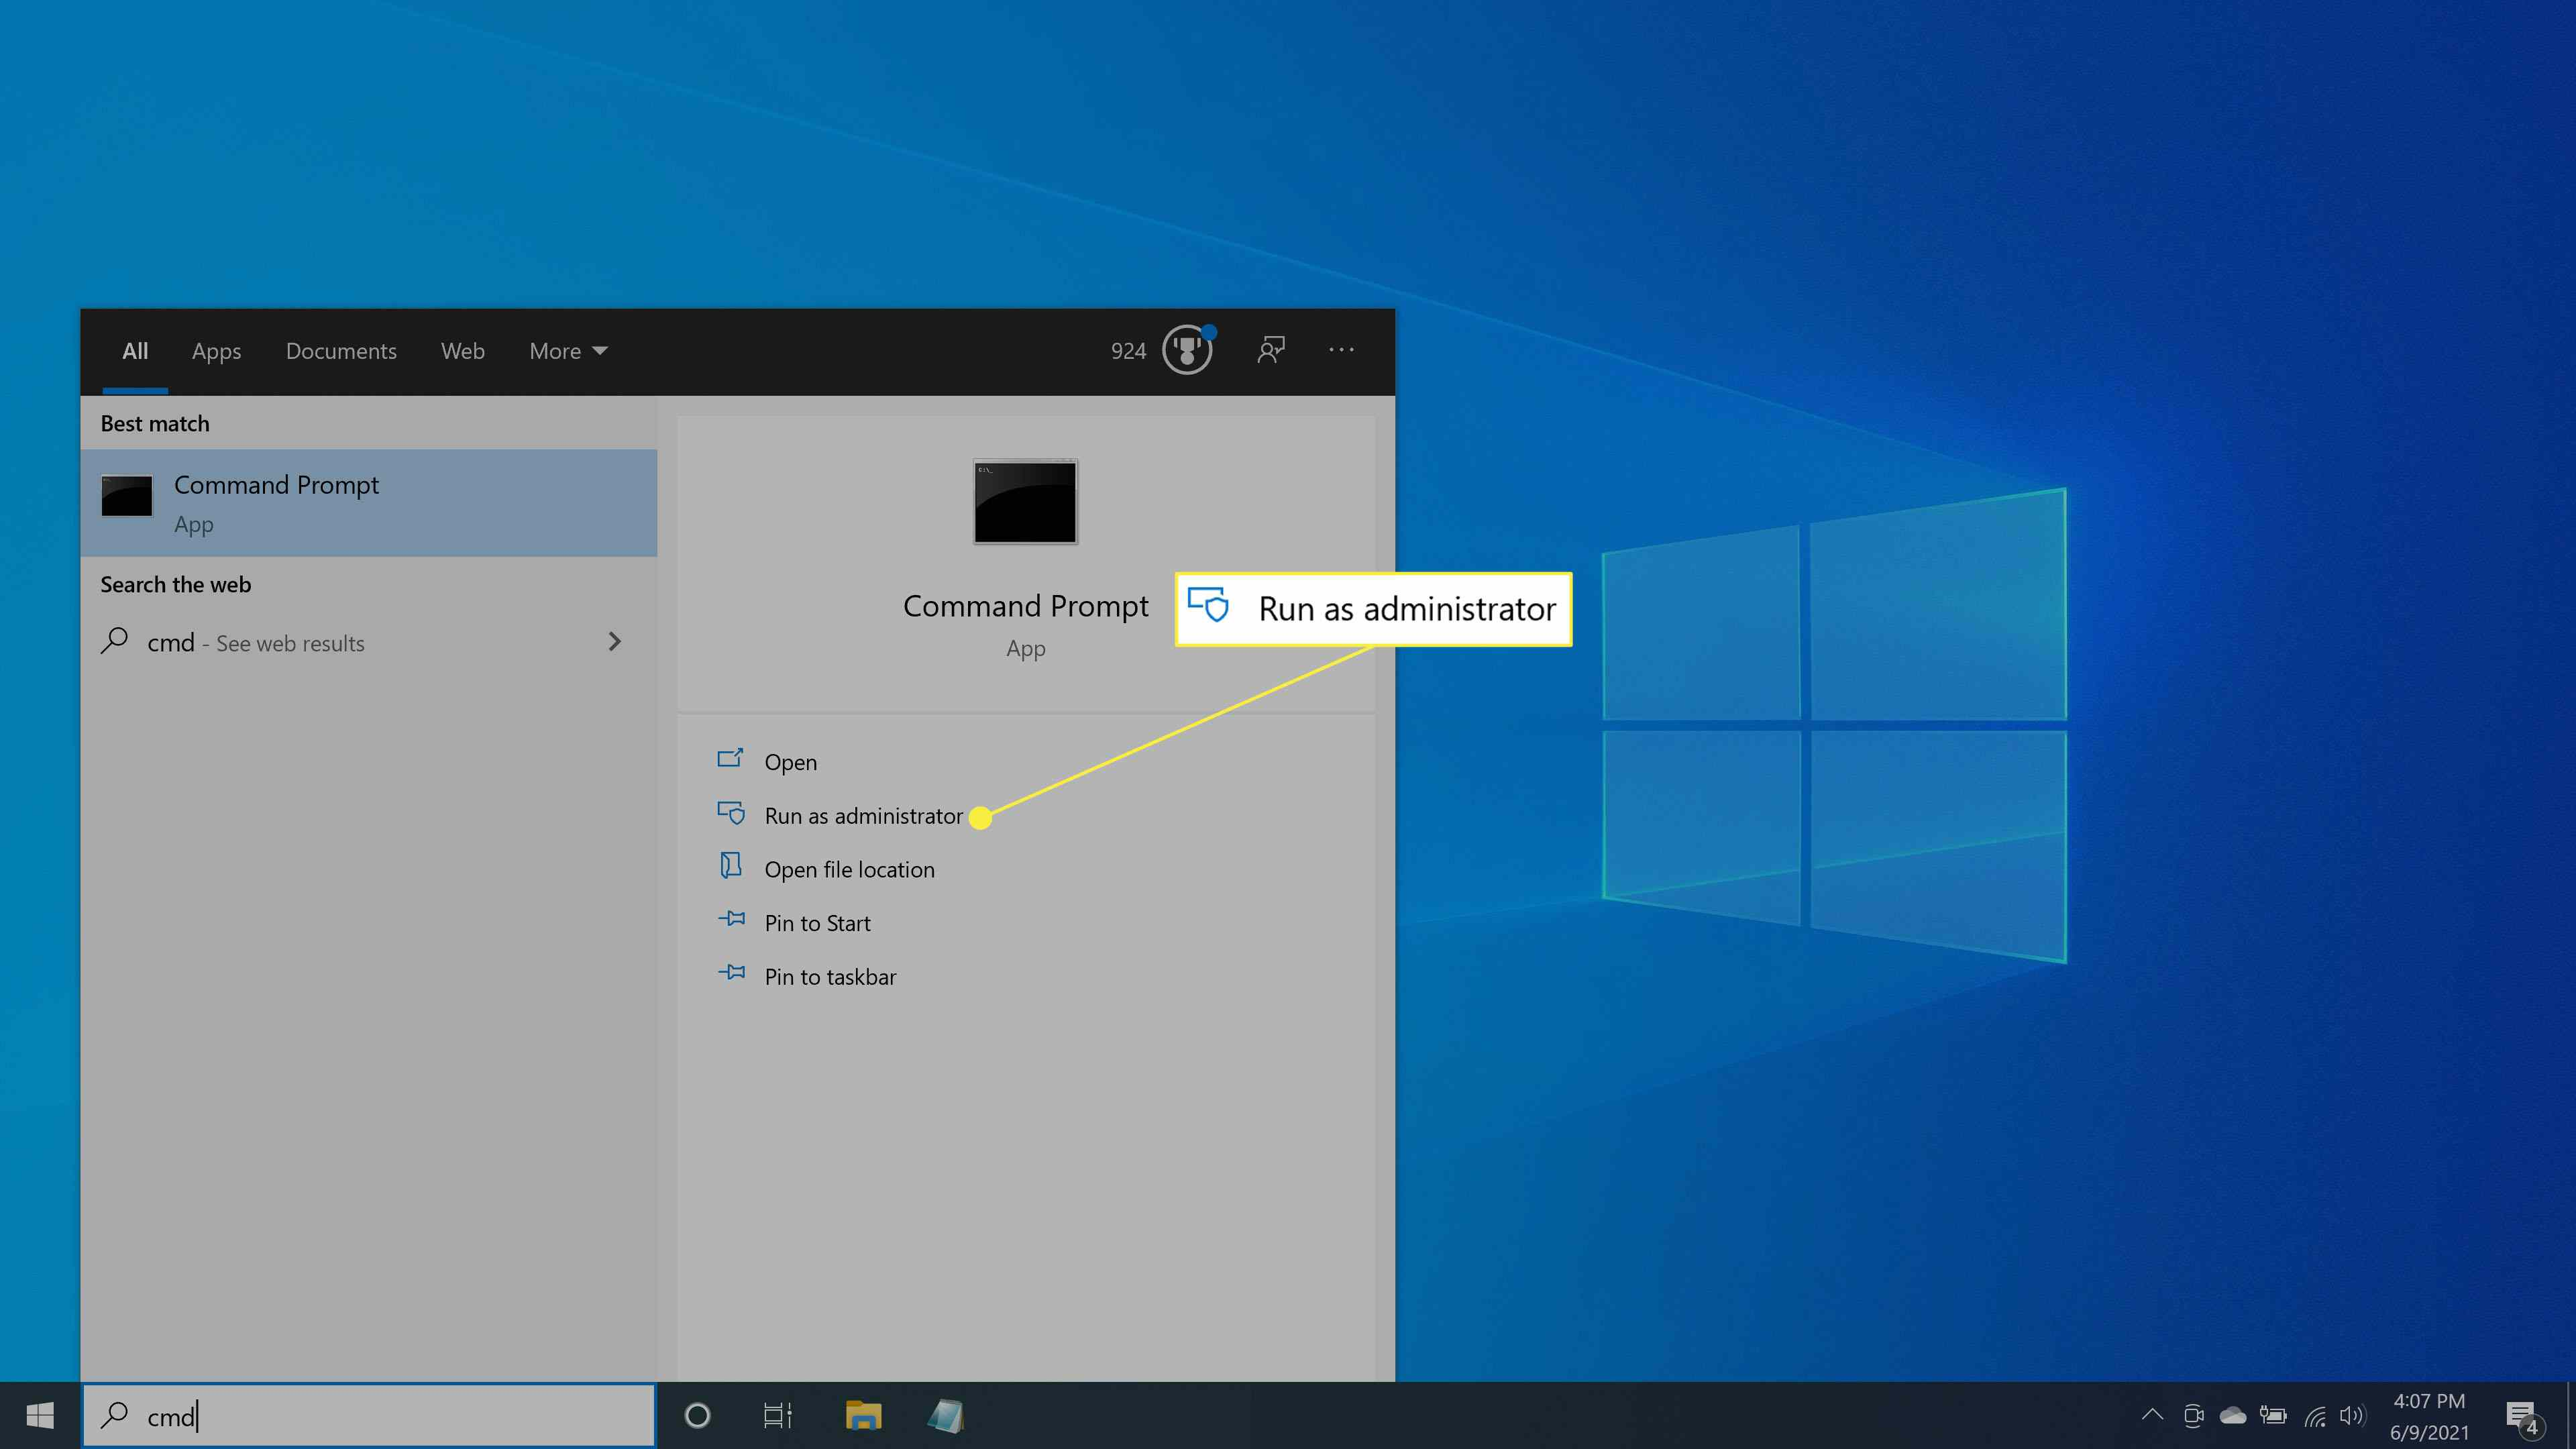 Running the Command Prompt as the administrator in Windows 10.